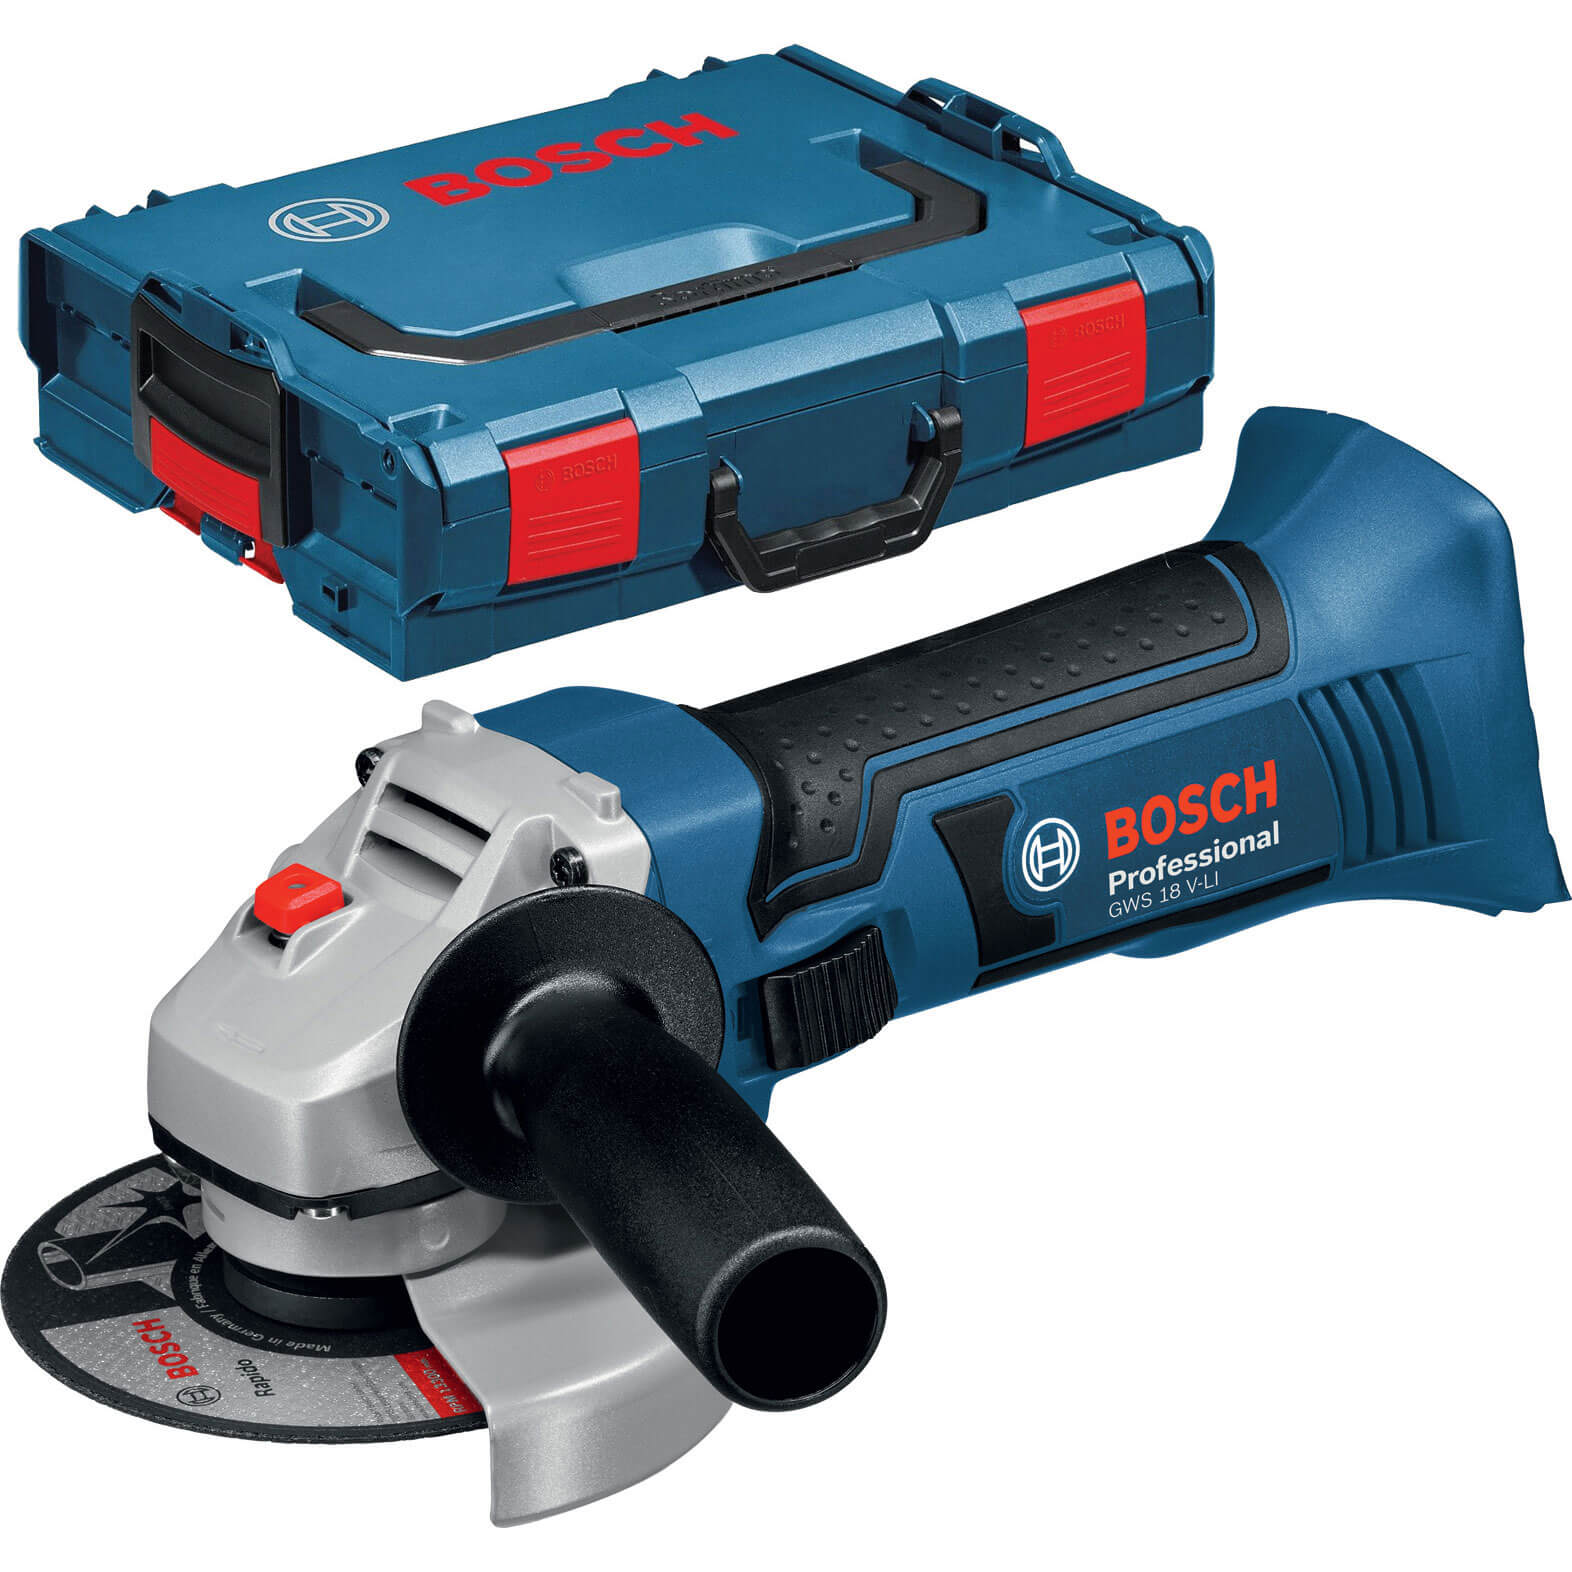 Bosch GWS18115 VLI 18v Cordless Angle Grinder 115mm No Batteries No Charger Case